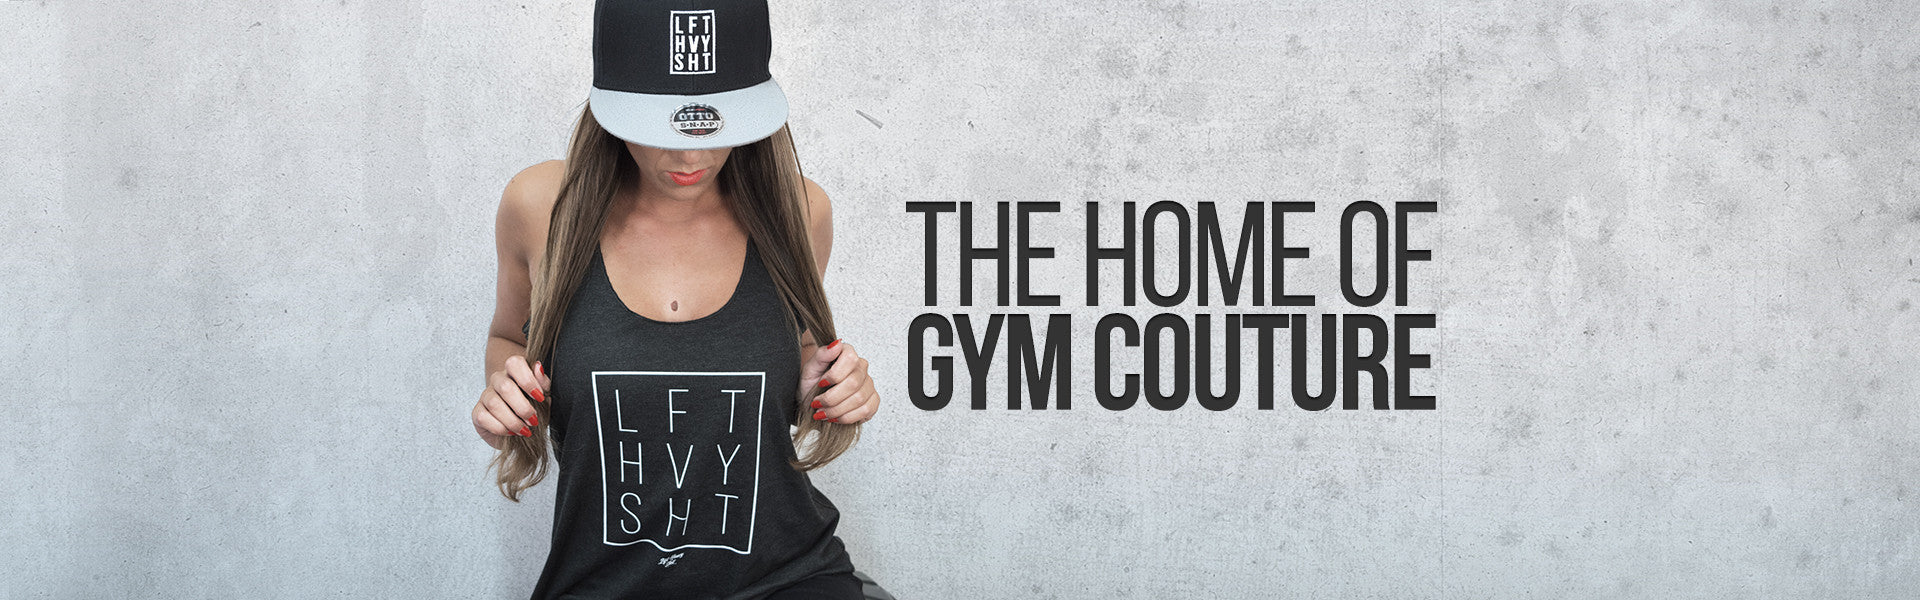 The home of gym couture